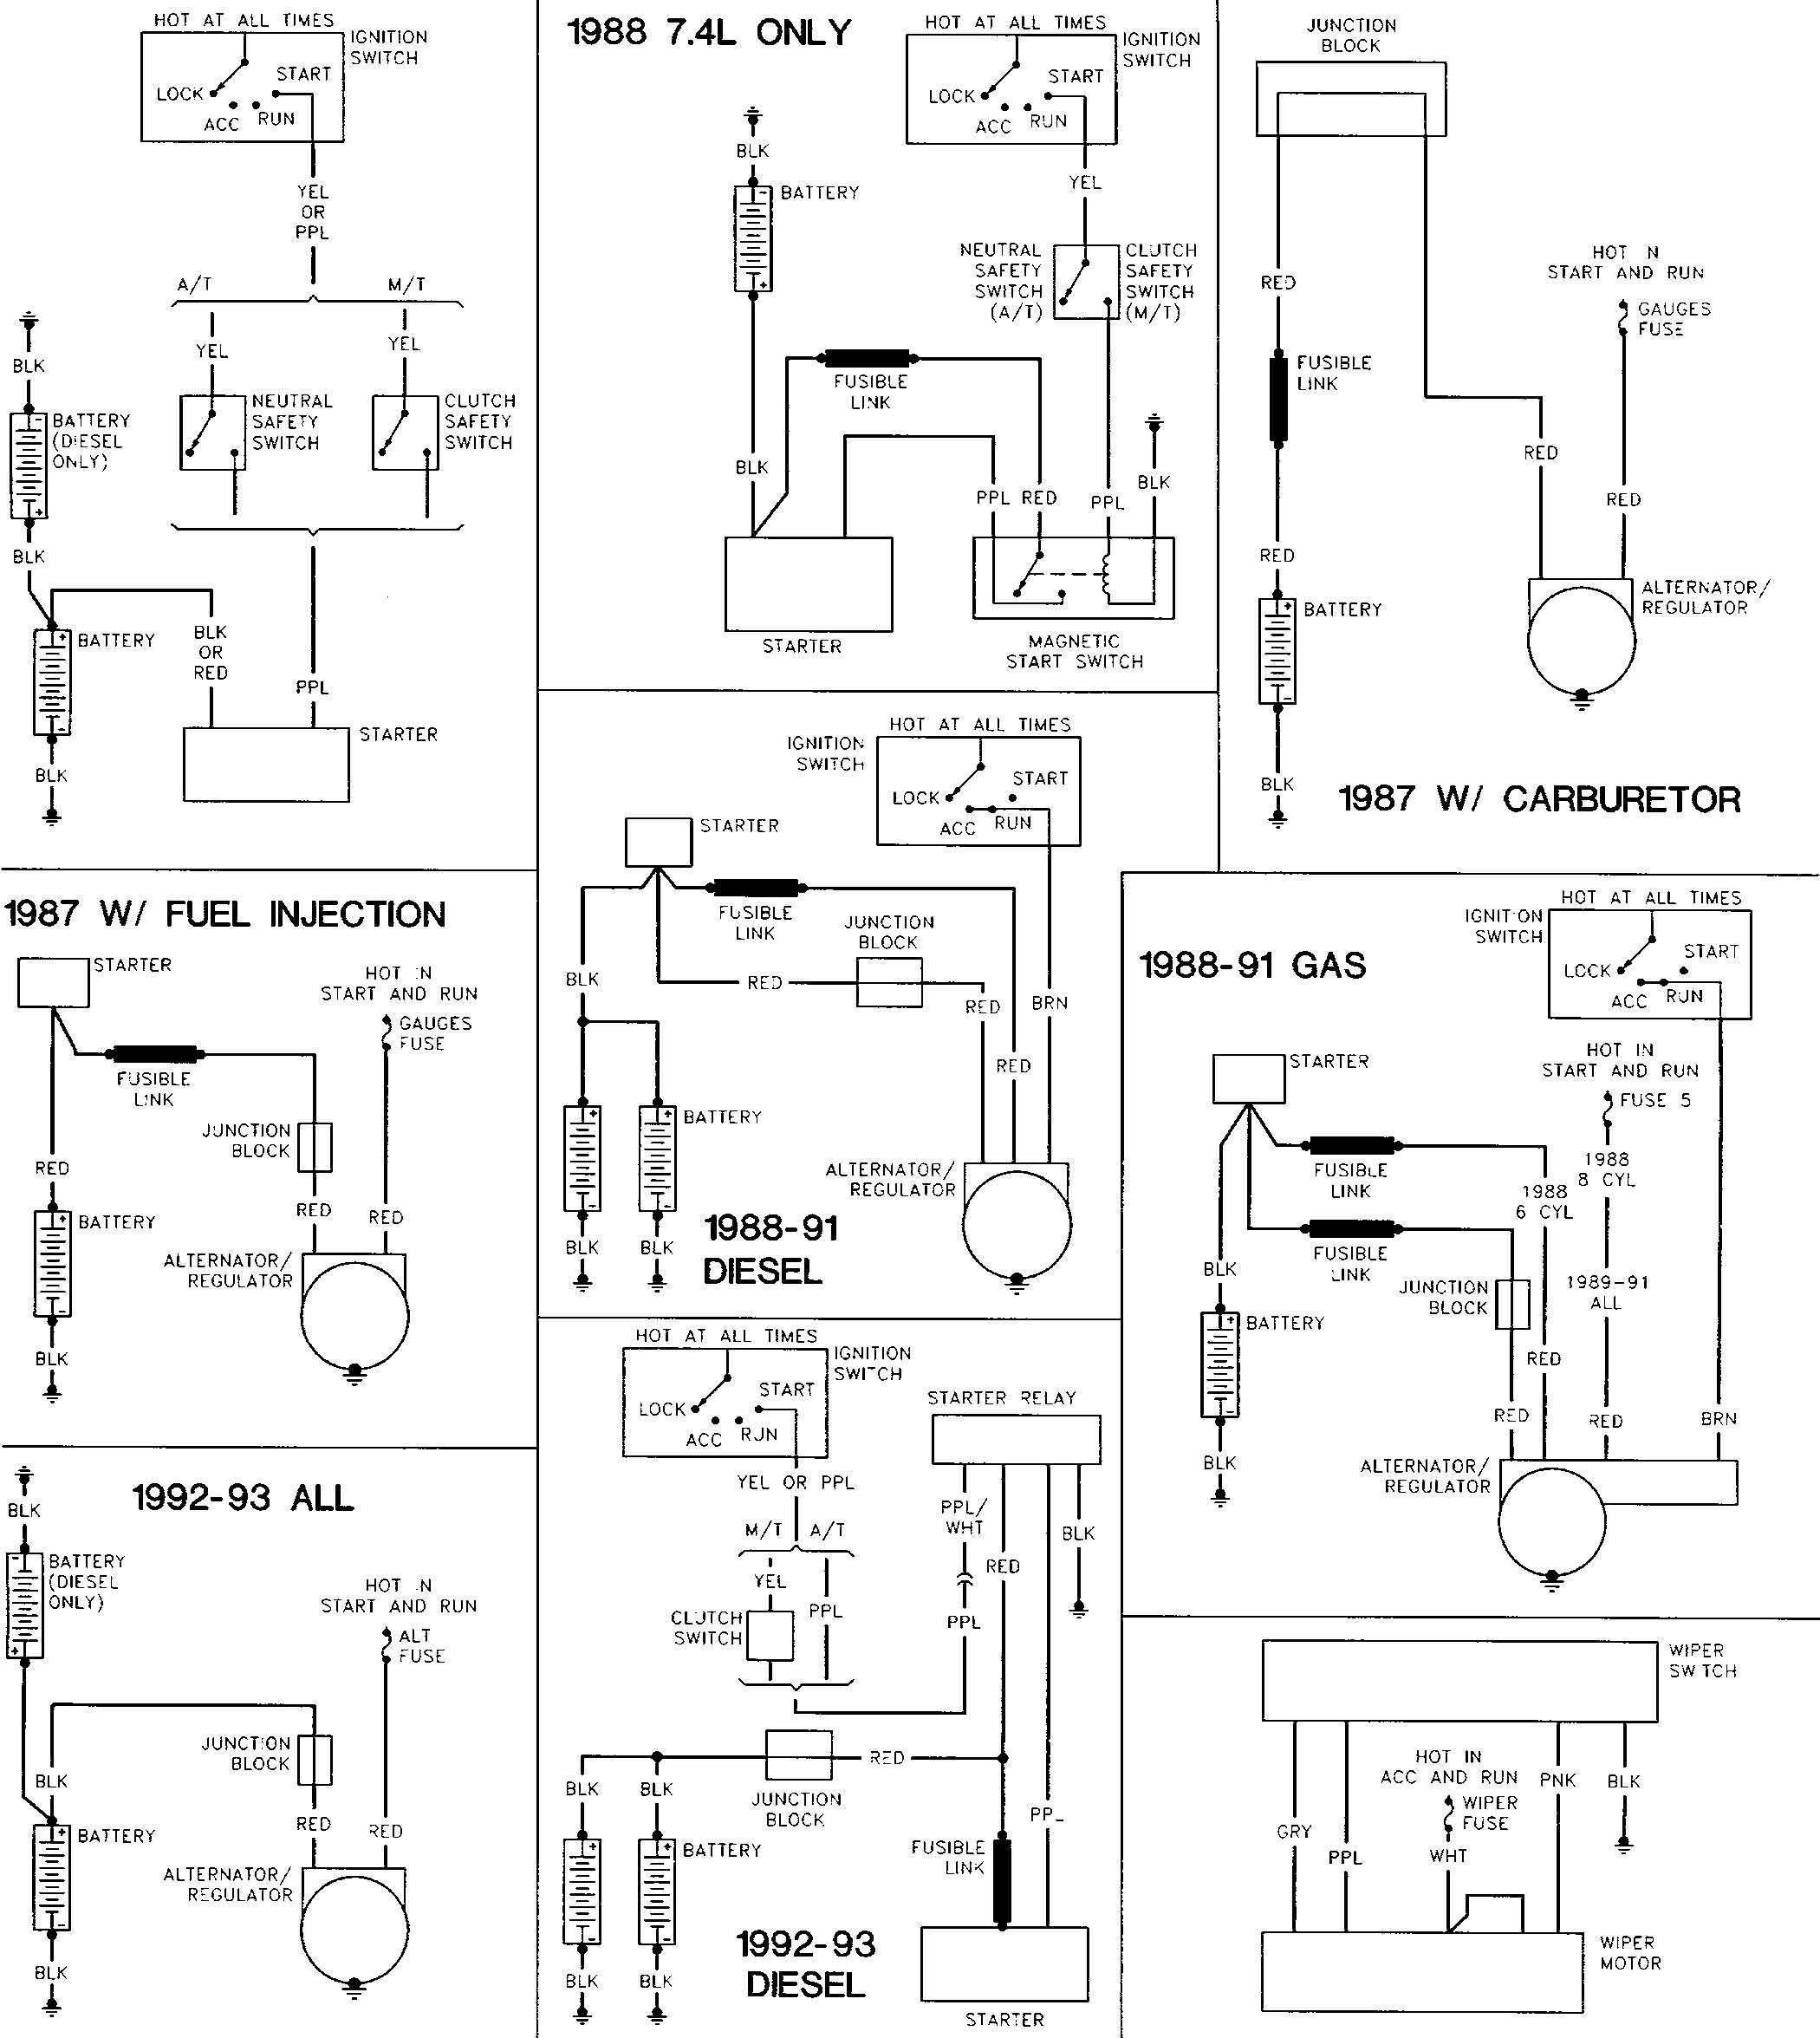 Damon Daybreak Wiring Diagram - Wiring Diagrams Show on